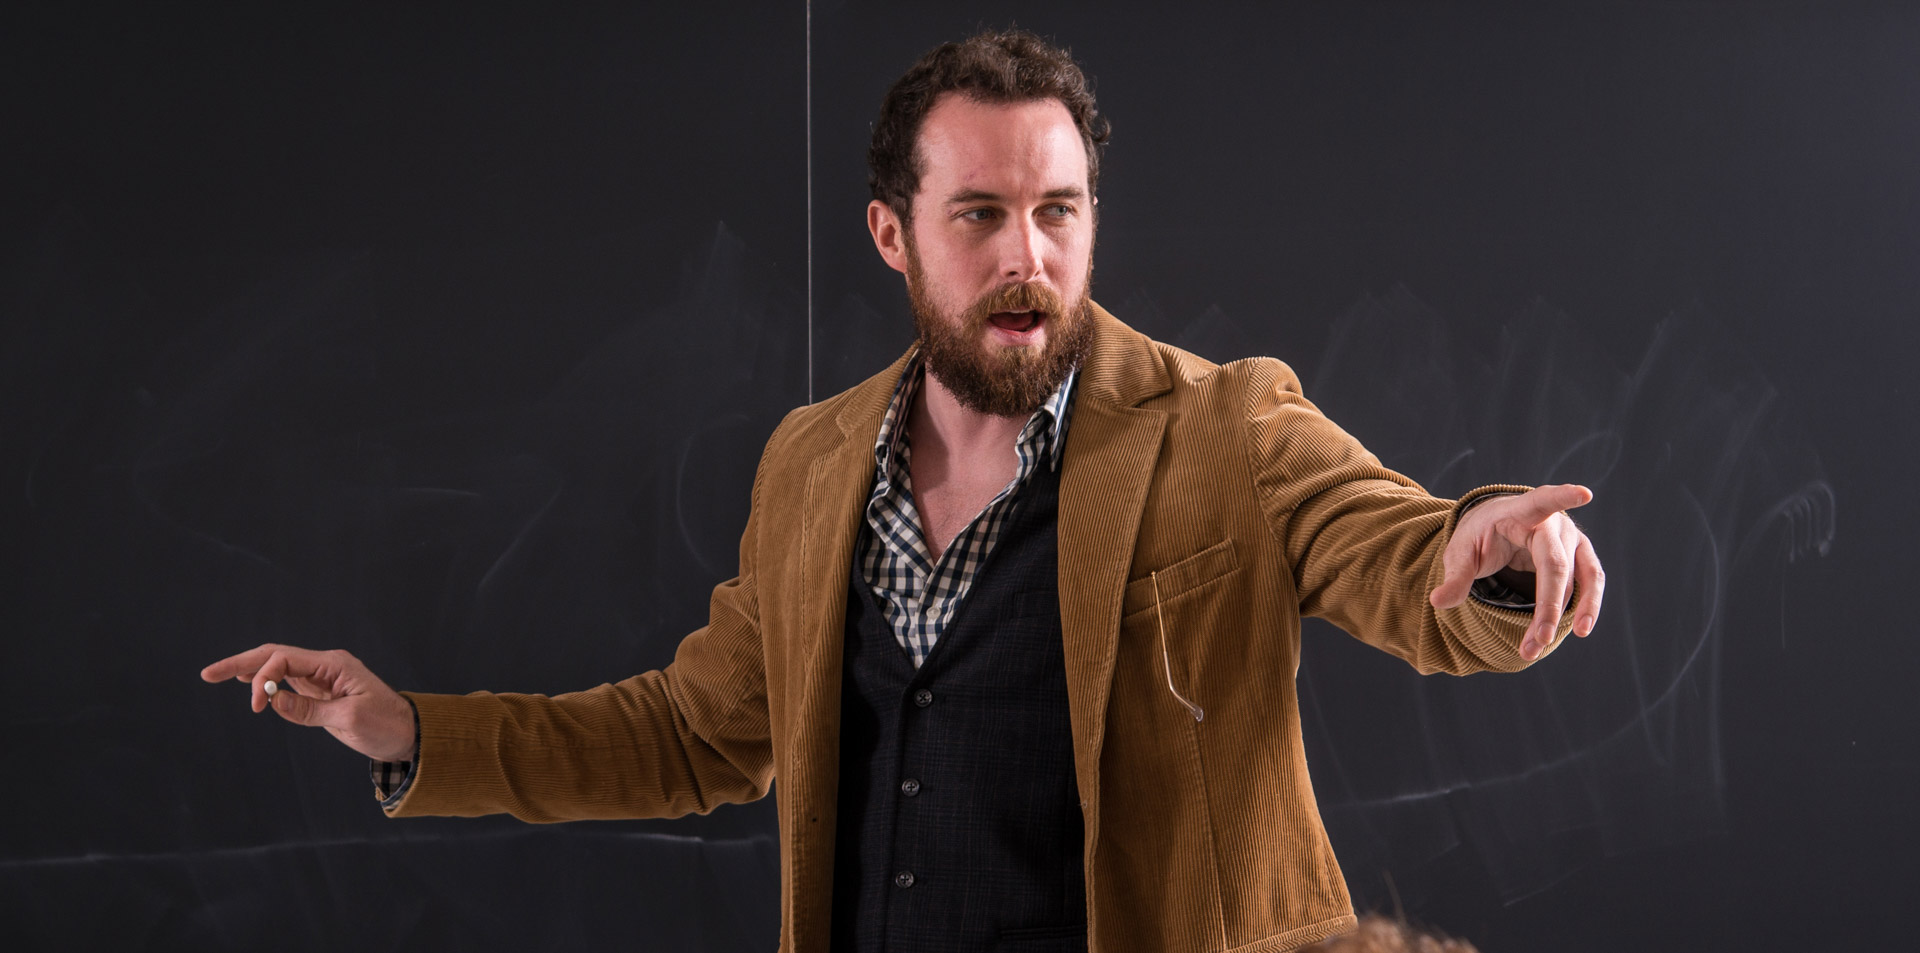 Faculty member standing at a chalkboard gesturing to a student